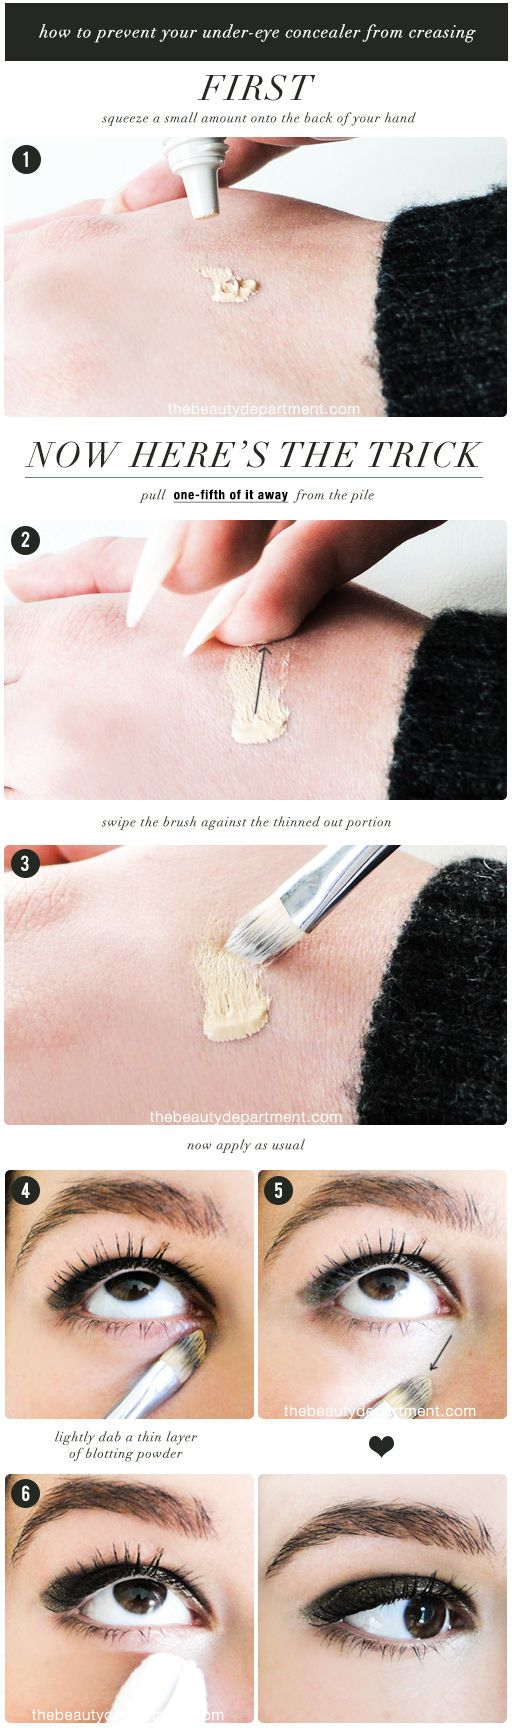 Prevent creases in your under-eye concealer with this easy eye makeup tutorial!